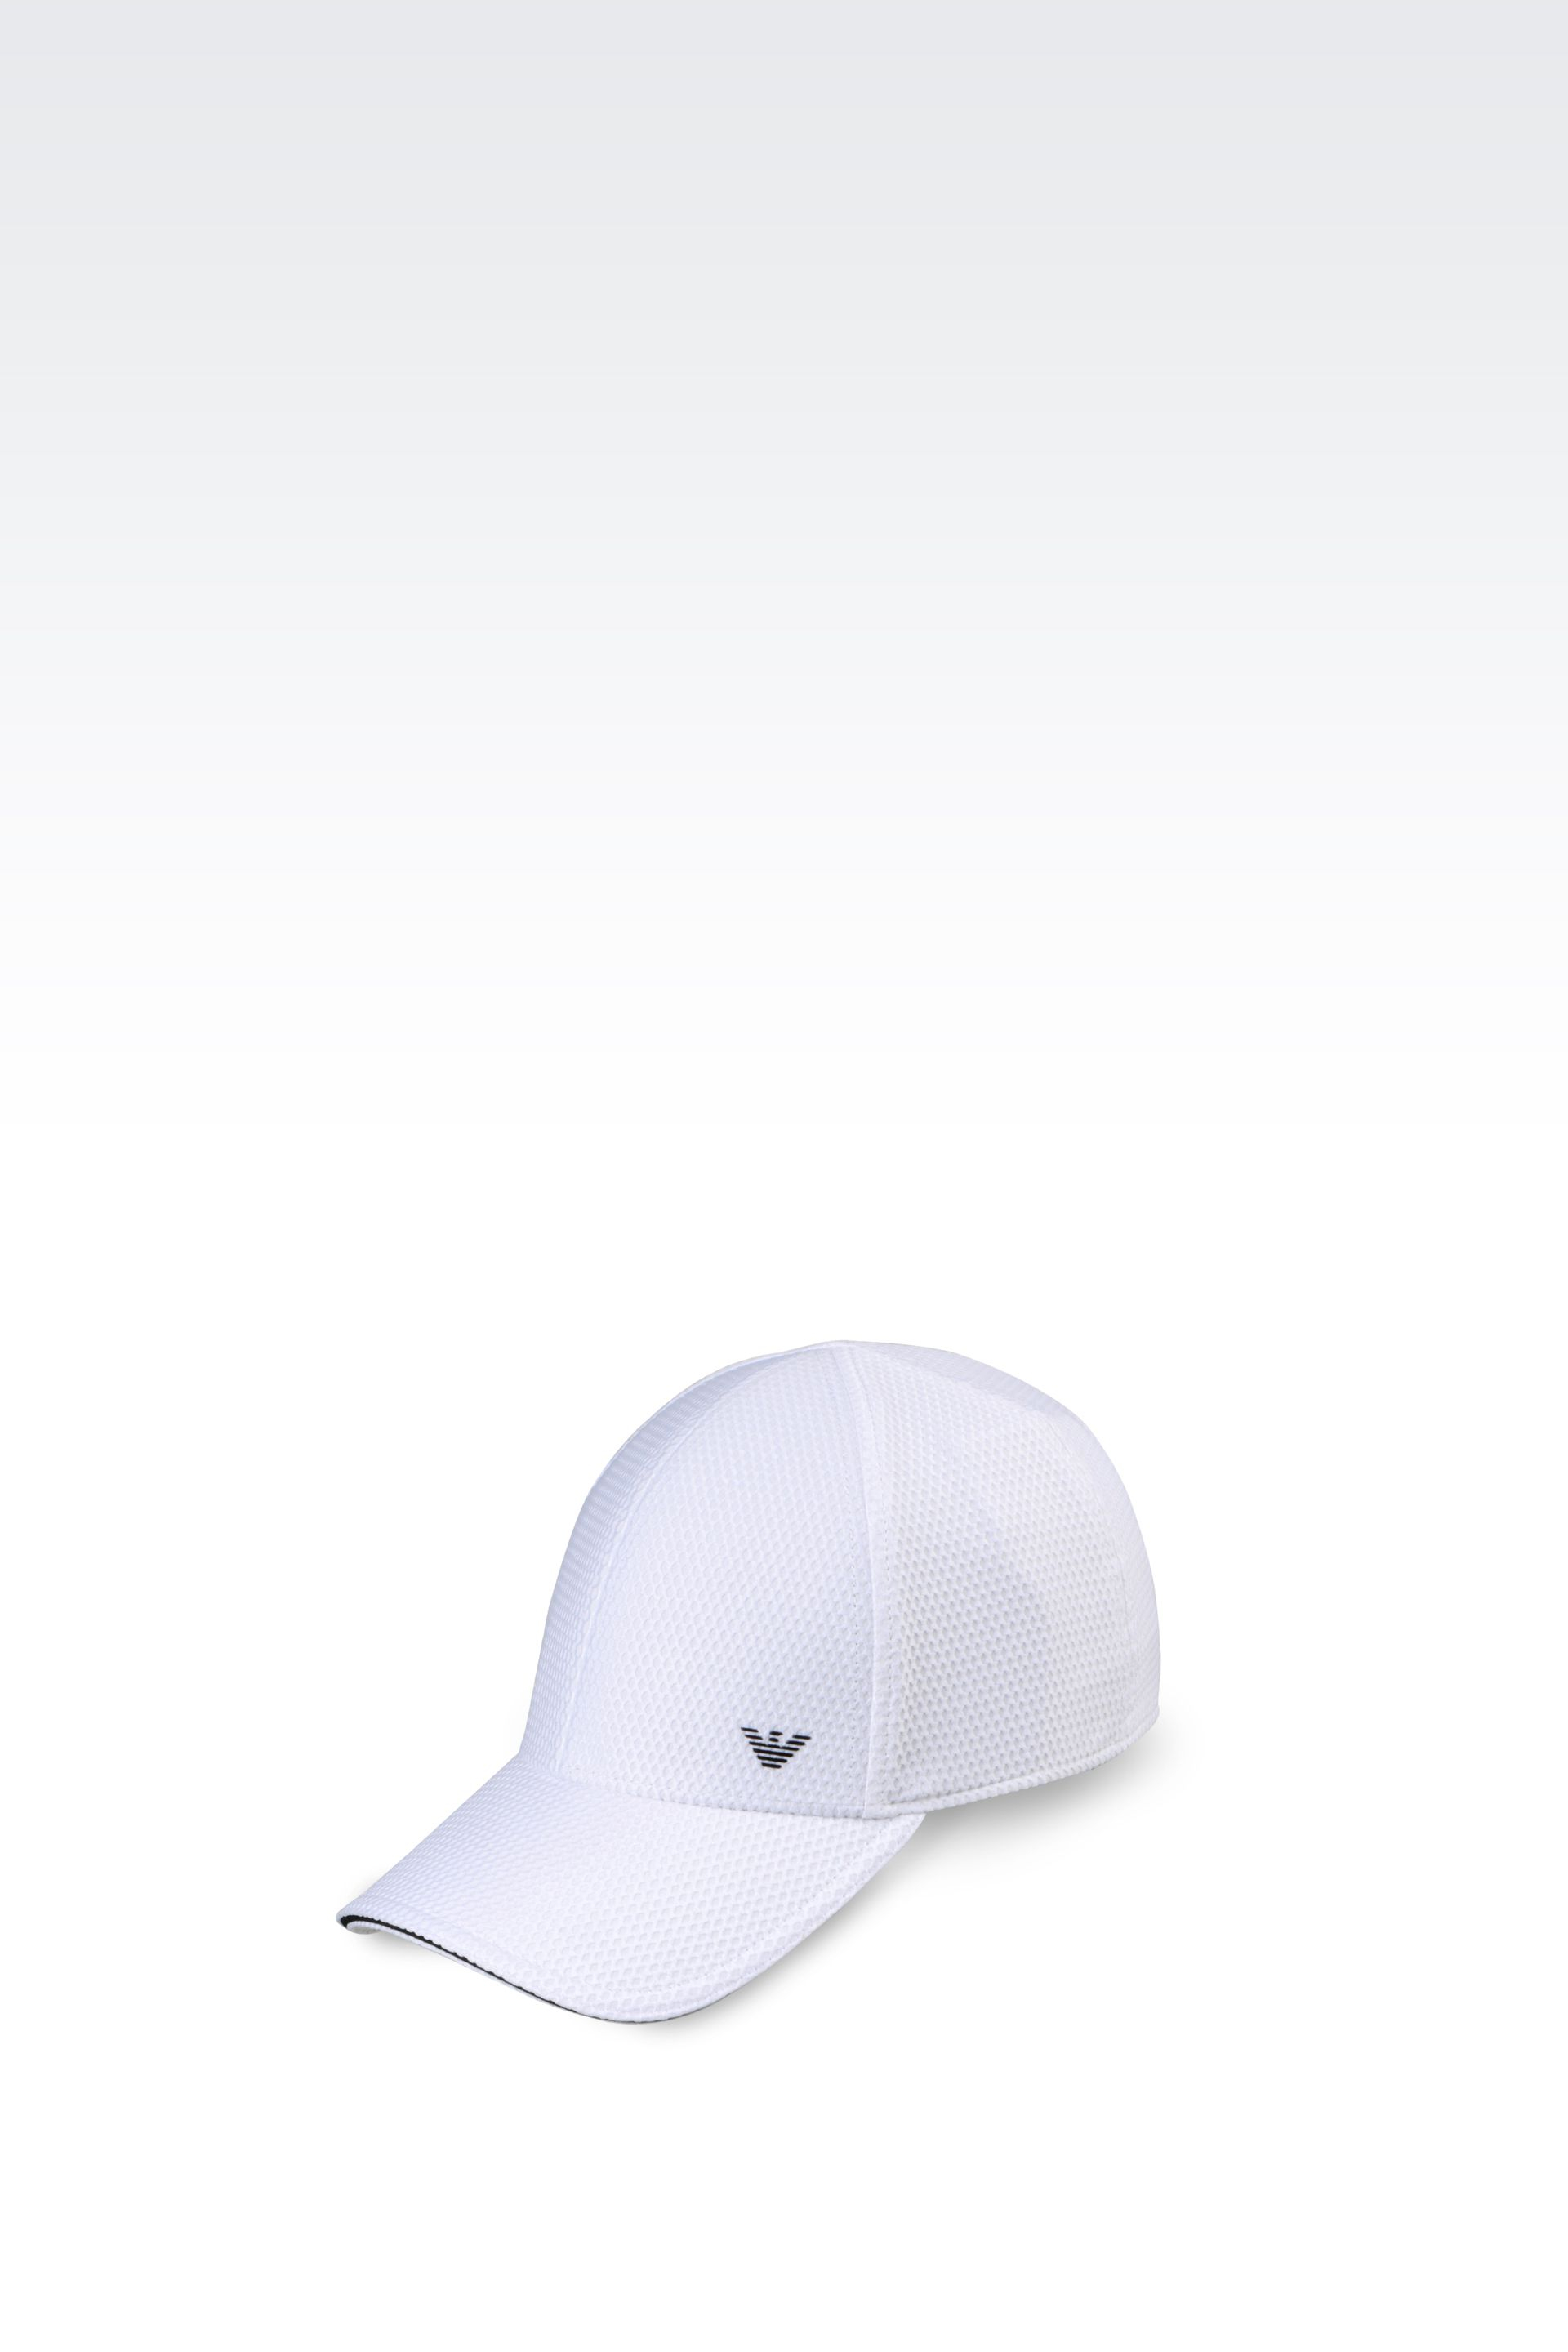 Lyst - Emporio Armani Baseball Cap In Technical Fabric in White for Men 663ab1d6ca6